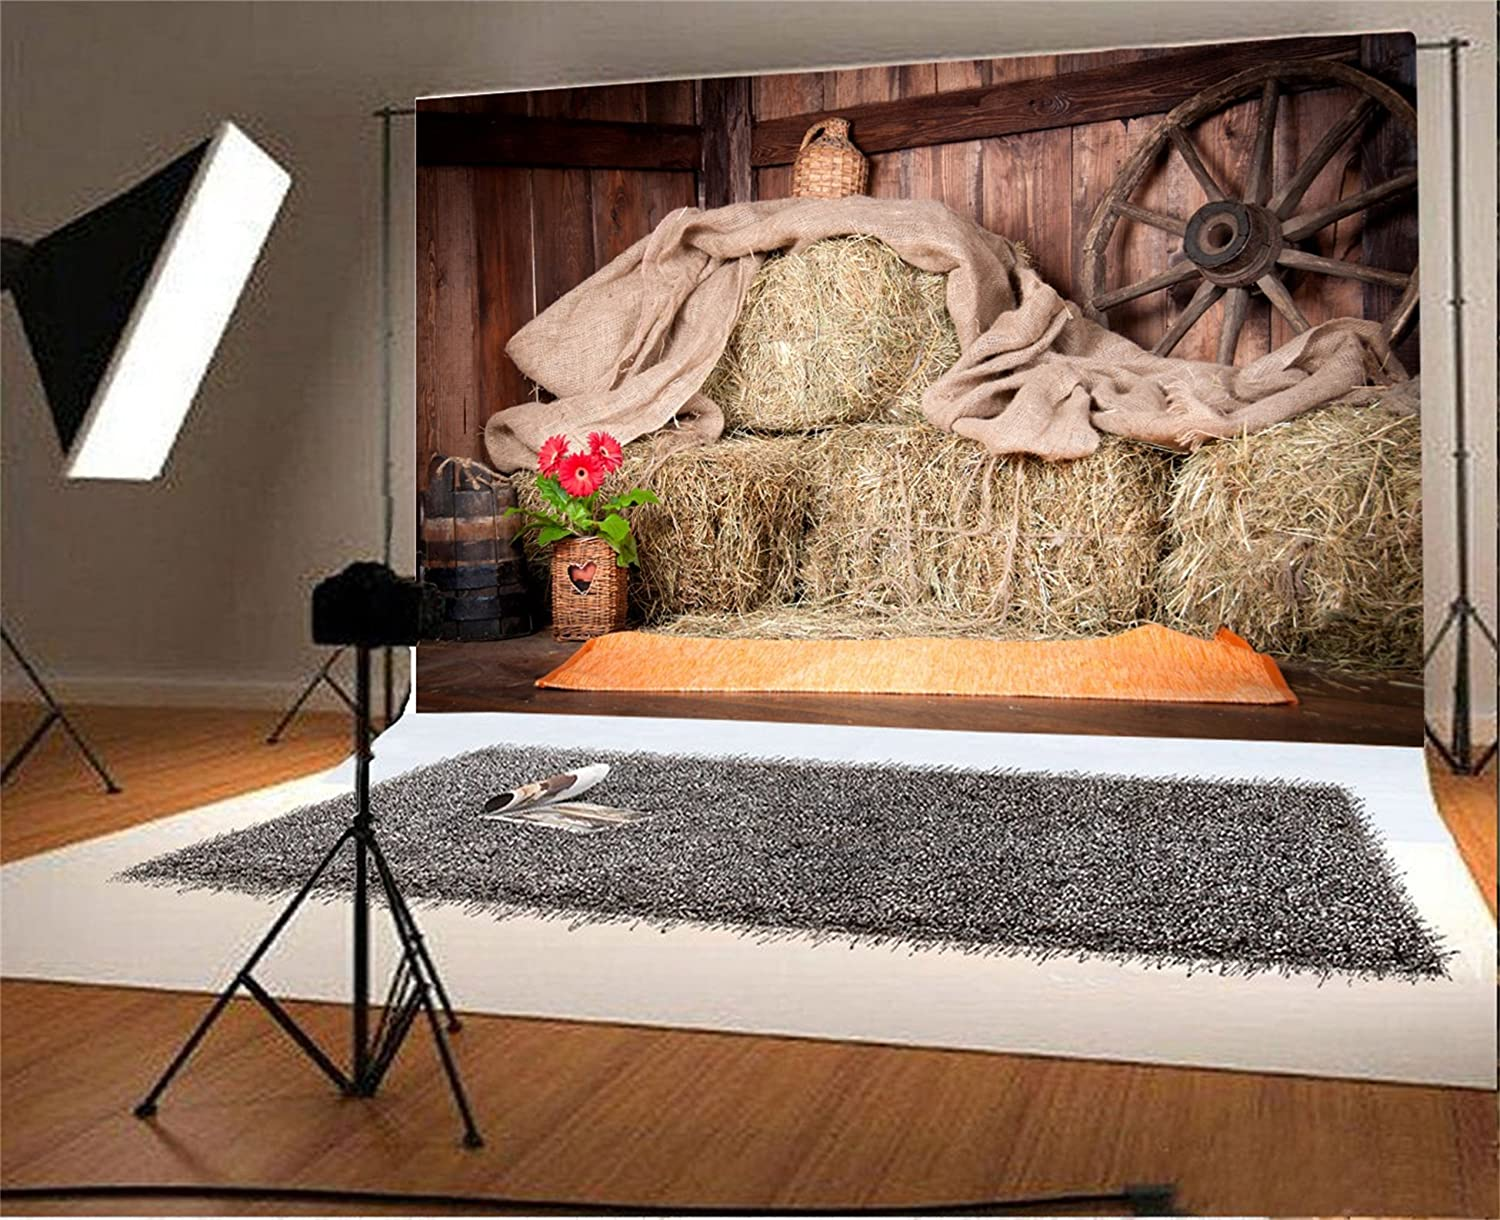 5x7ft Photography Backdrop Countryside Farmland Dusk Scene Blue Sky Golden Wheat Field Straw Bales Colourful Autumn Agriculture Background Artistic Protrait Photo Studio Props Vinyl